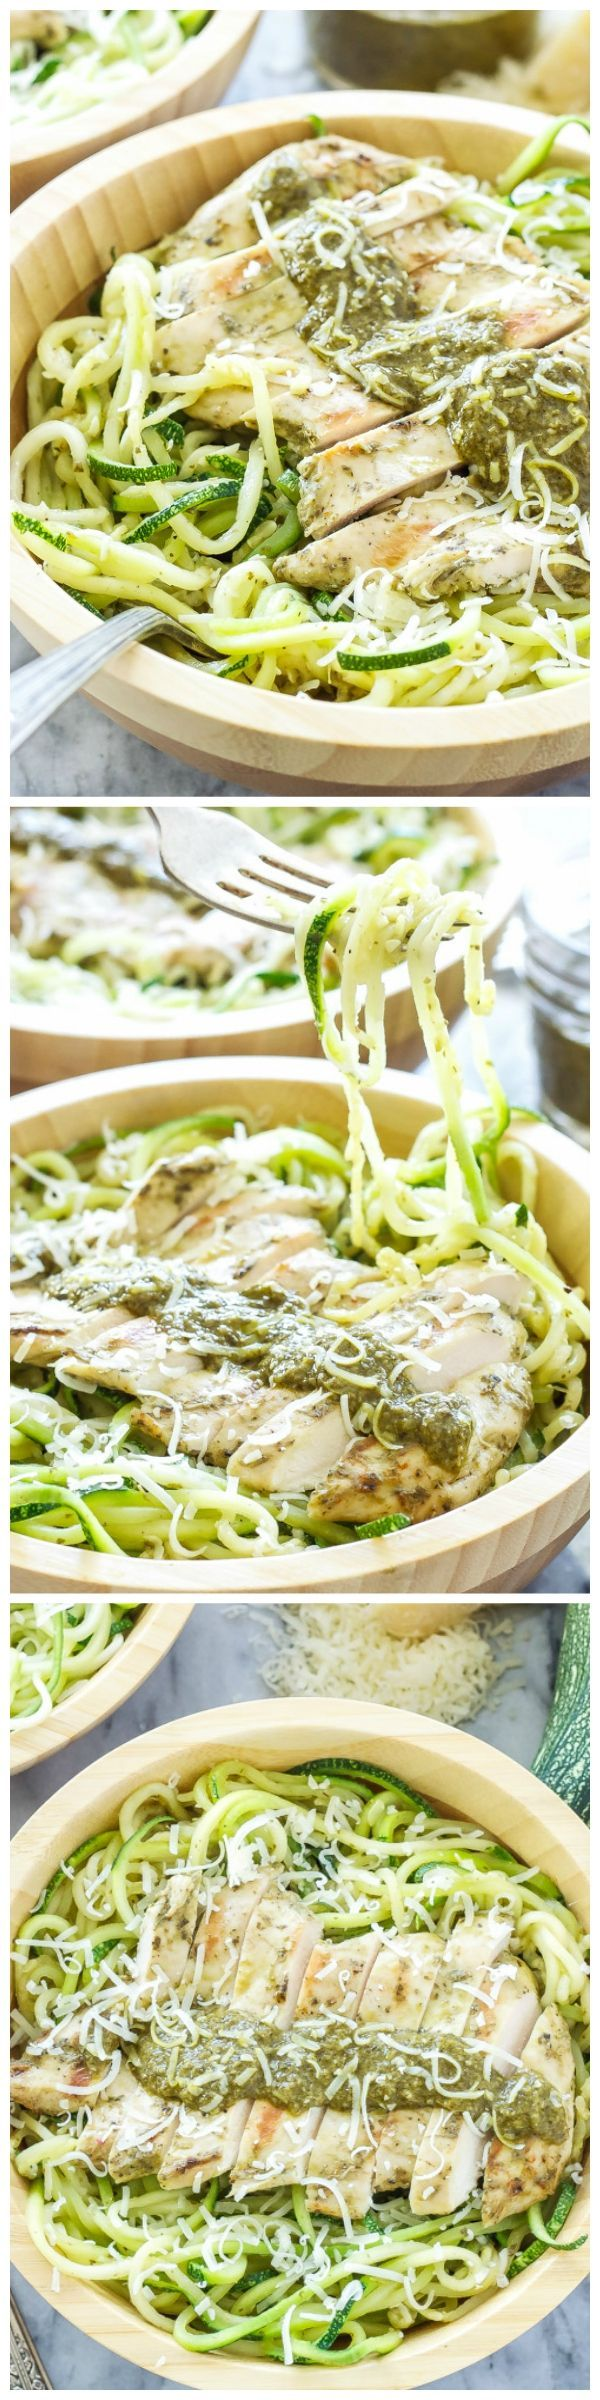 Pesto Chicken with Zucchini Noodles - Juicy chicken marinated in pesto is the perfect protein to top these healthy and delicious zucchini noodles! A fast and easy alternative to your regular pasta dinner! #zoodles